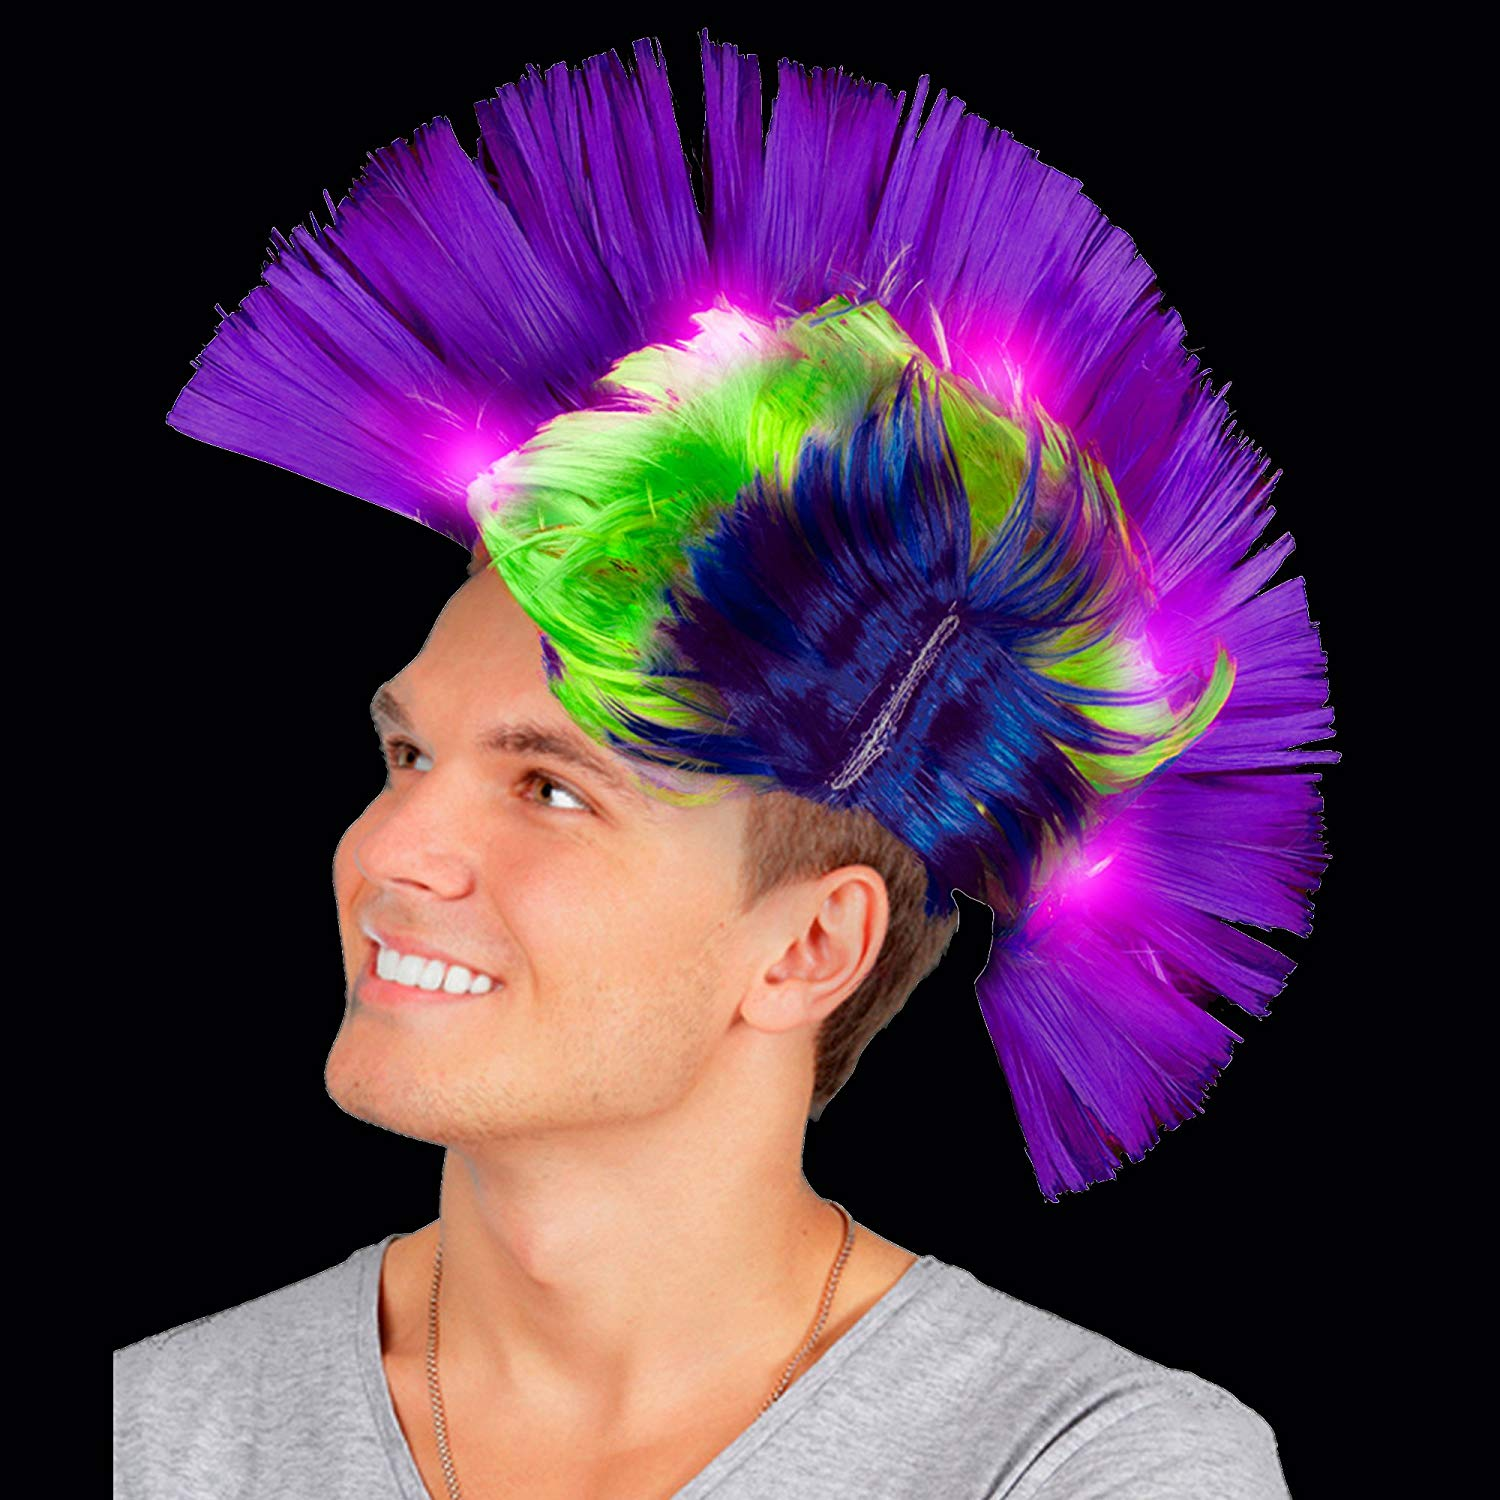 LED Light Up Mohawk Wig Light Up... Fun Central AD154 Purple Green and Yellow